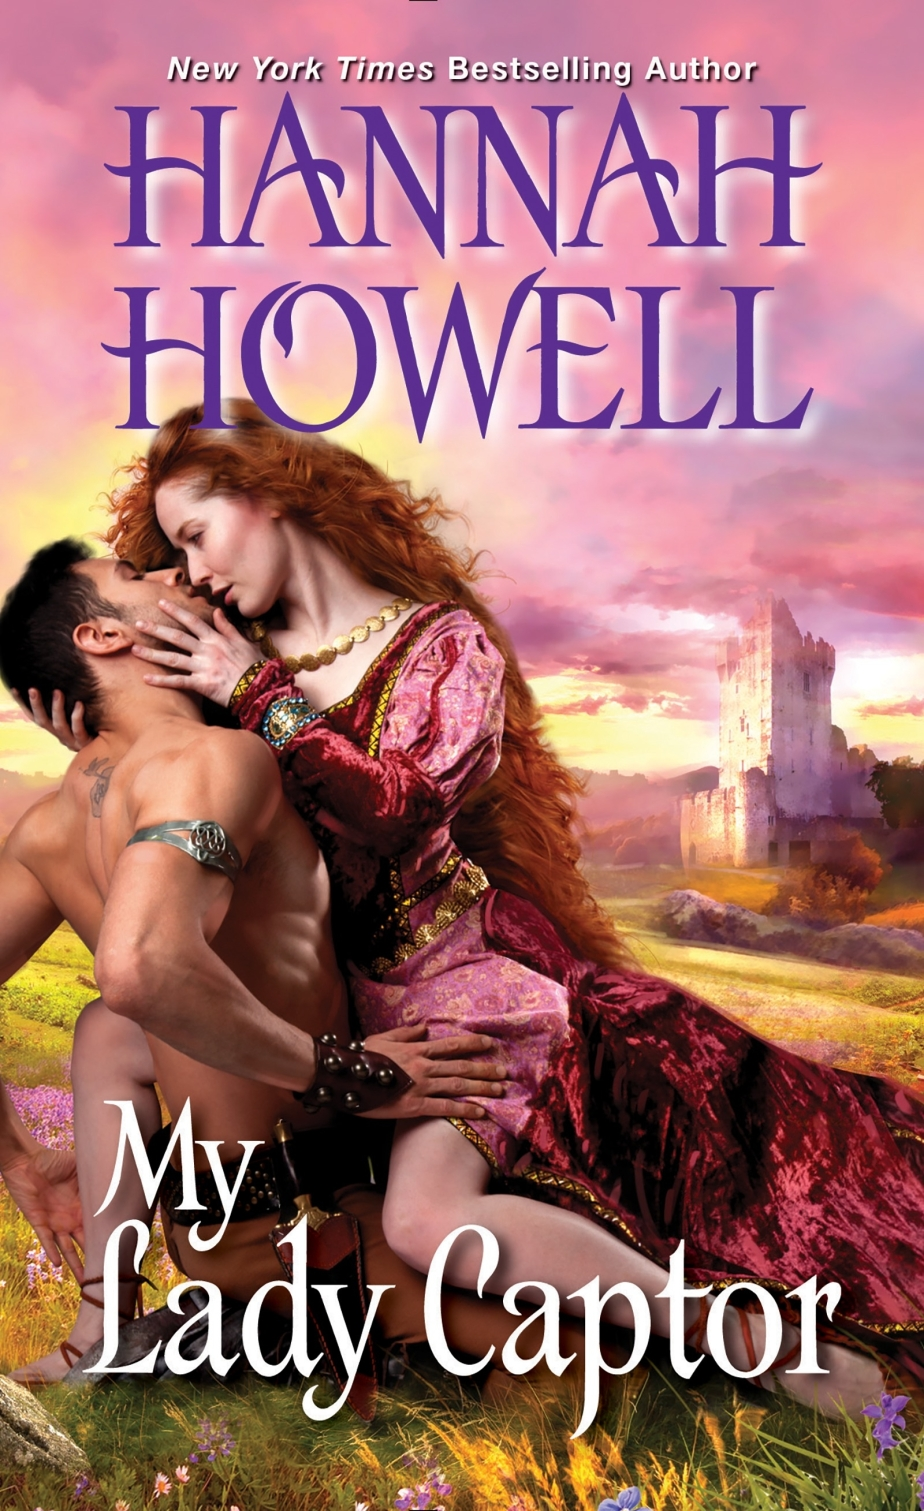 Enthralling Read ~ My Lady Captor by Hannah Howell